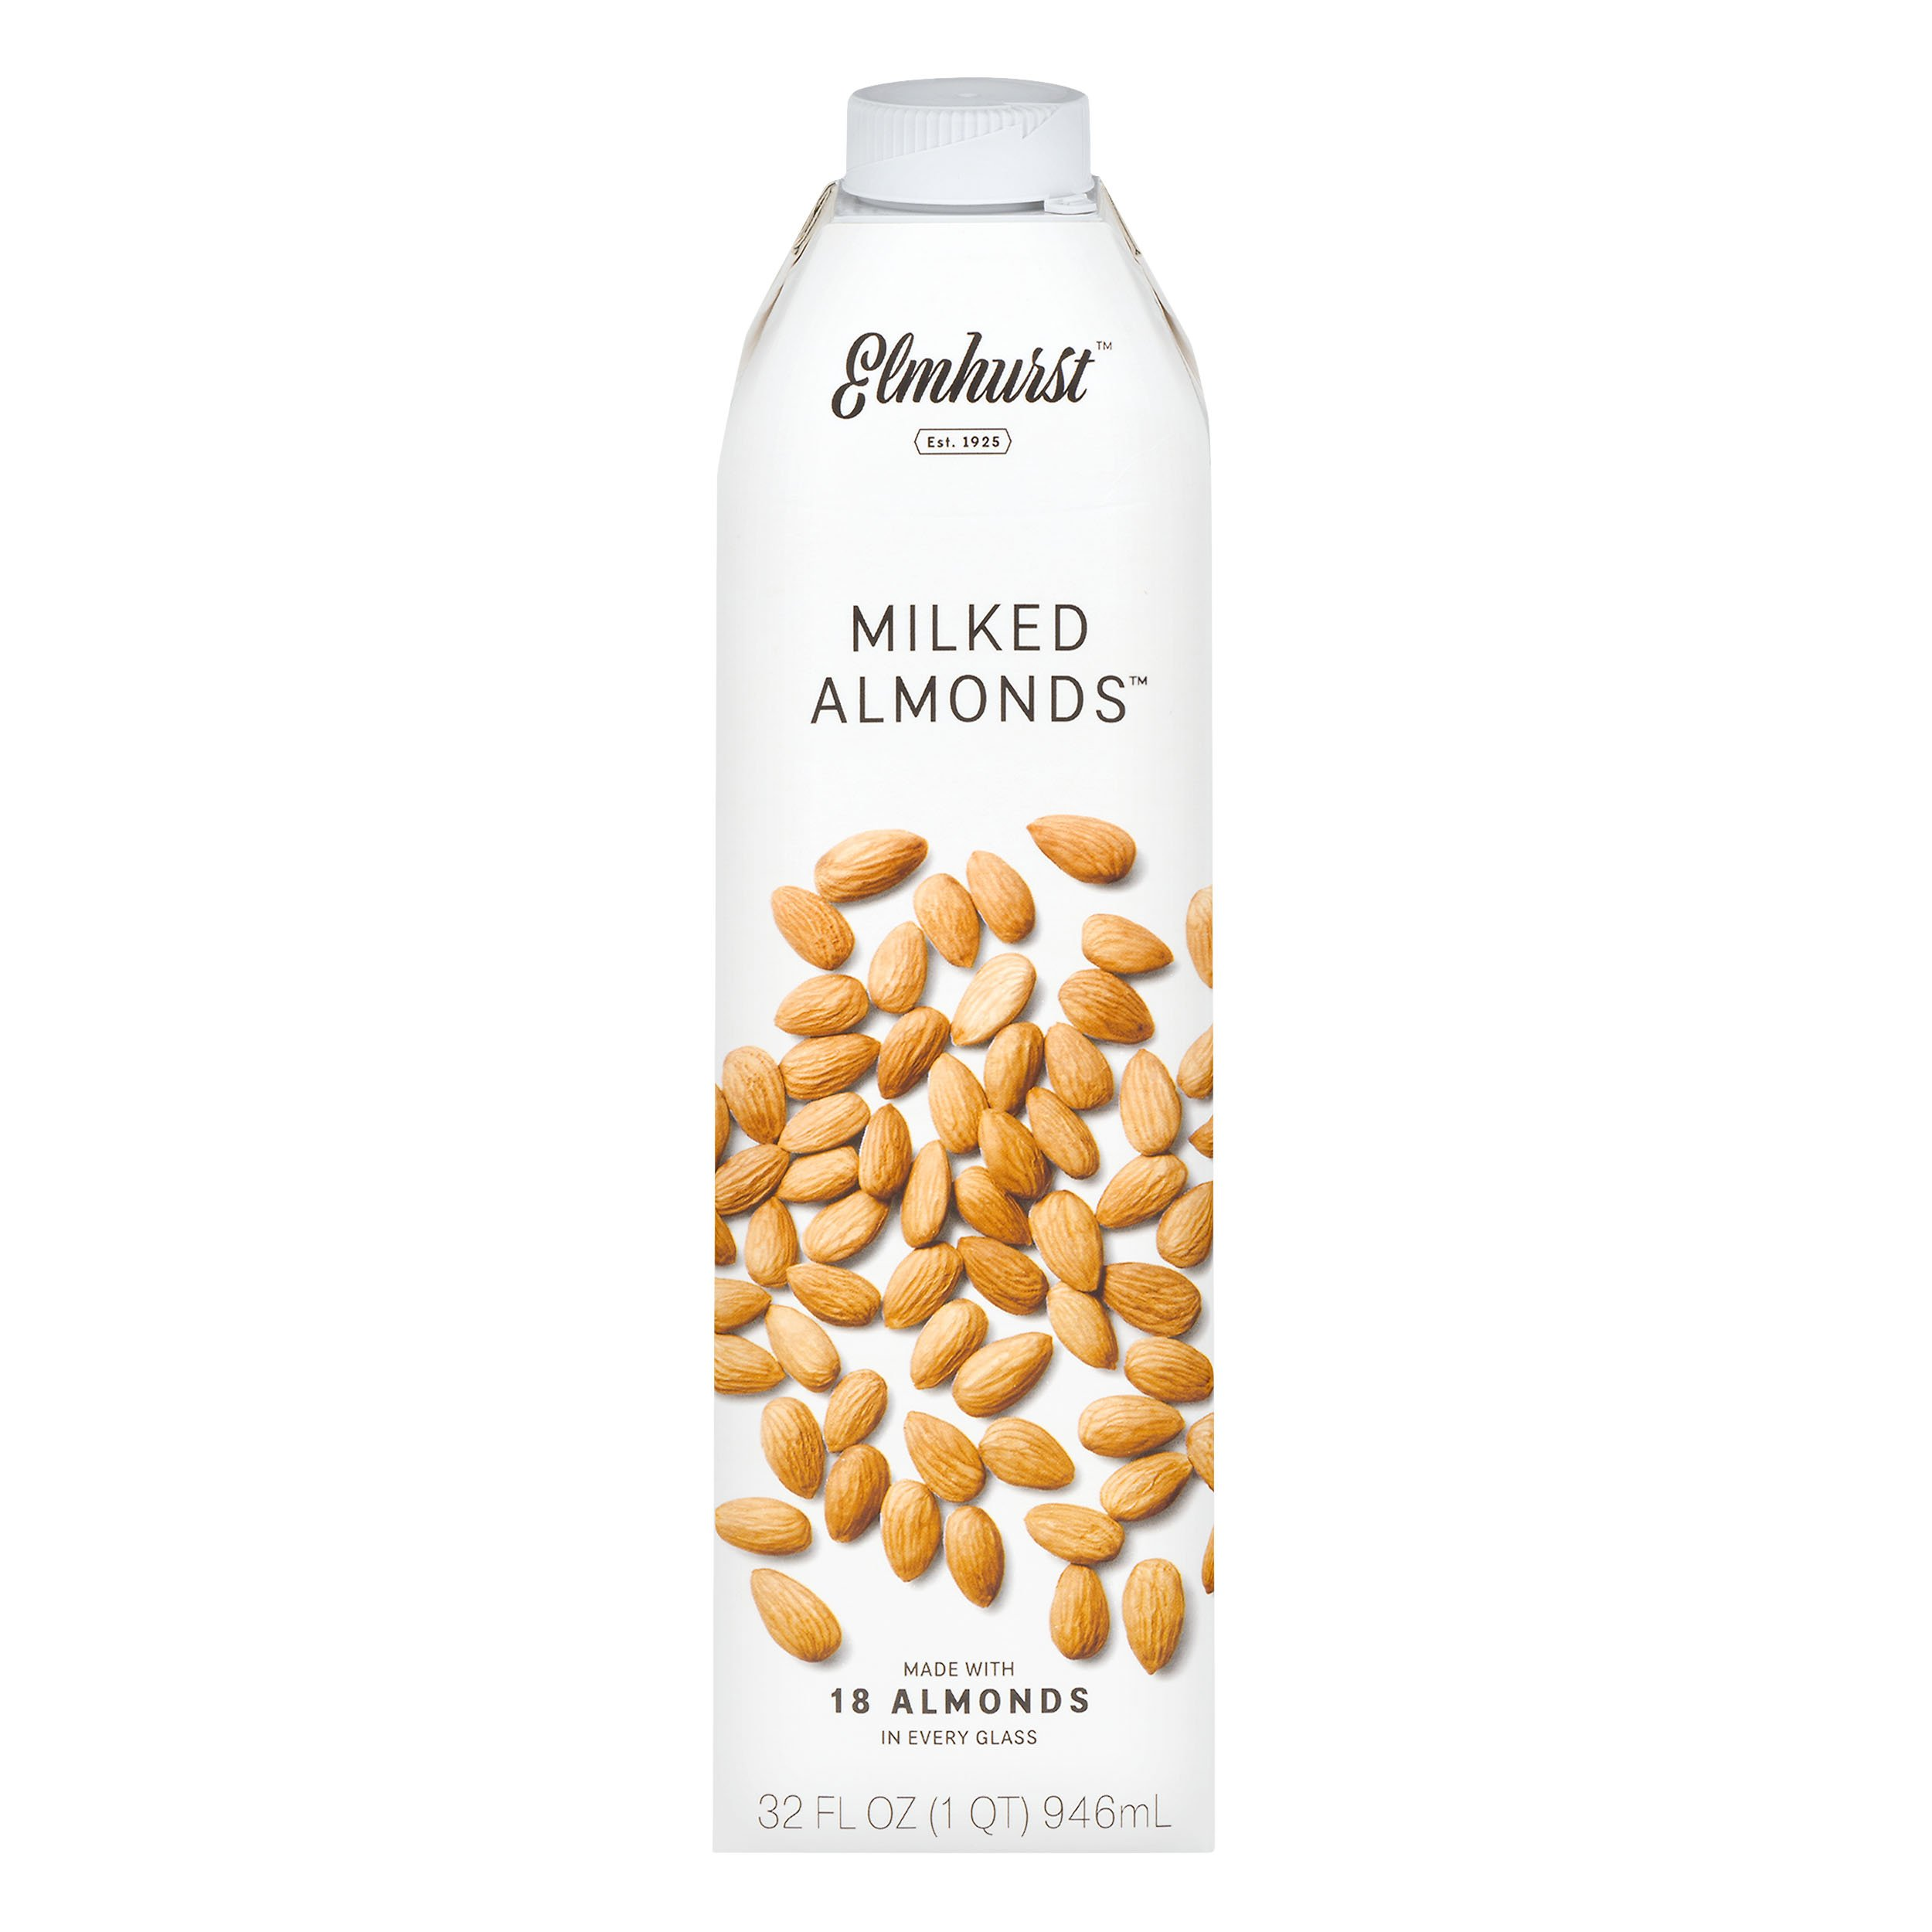 Elmhurst Milked - Almond Milk - 32 Fluid Ounces (Pack of 6) Only 5 Ingredients, 4X the Protein, Non Dairy, Keto Friendly, No Added Gums or Emulsifiers, Vegan by Elmhurst (Image #3)